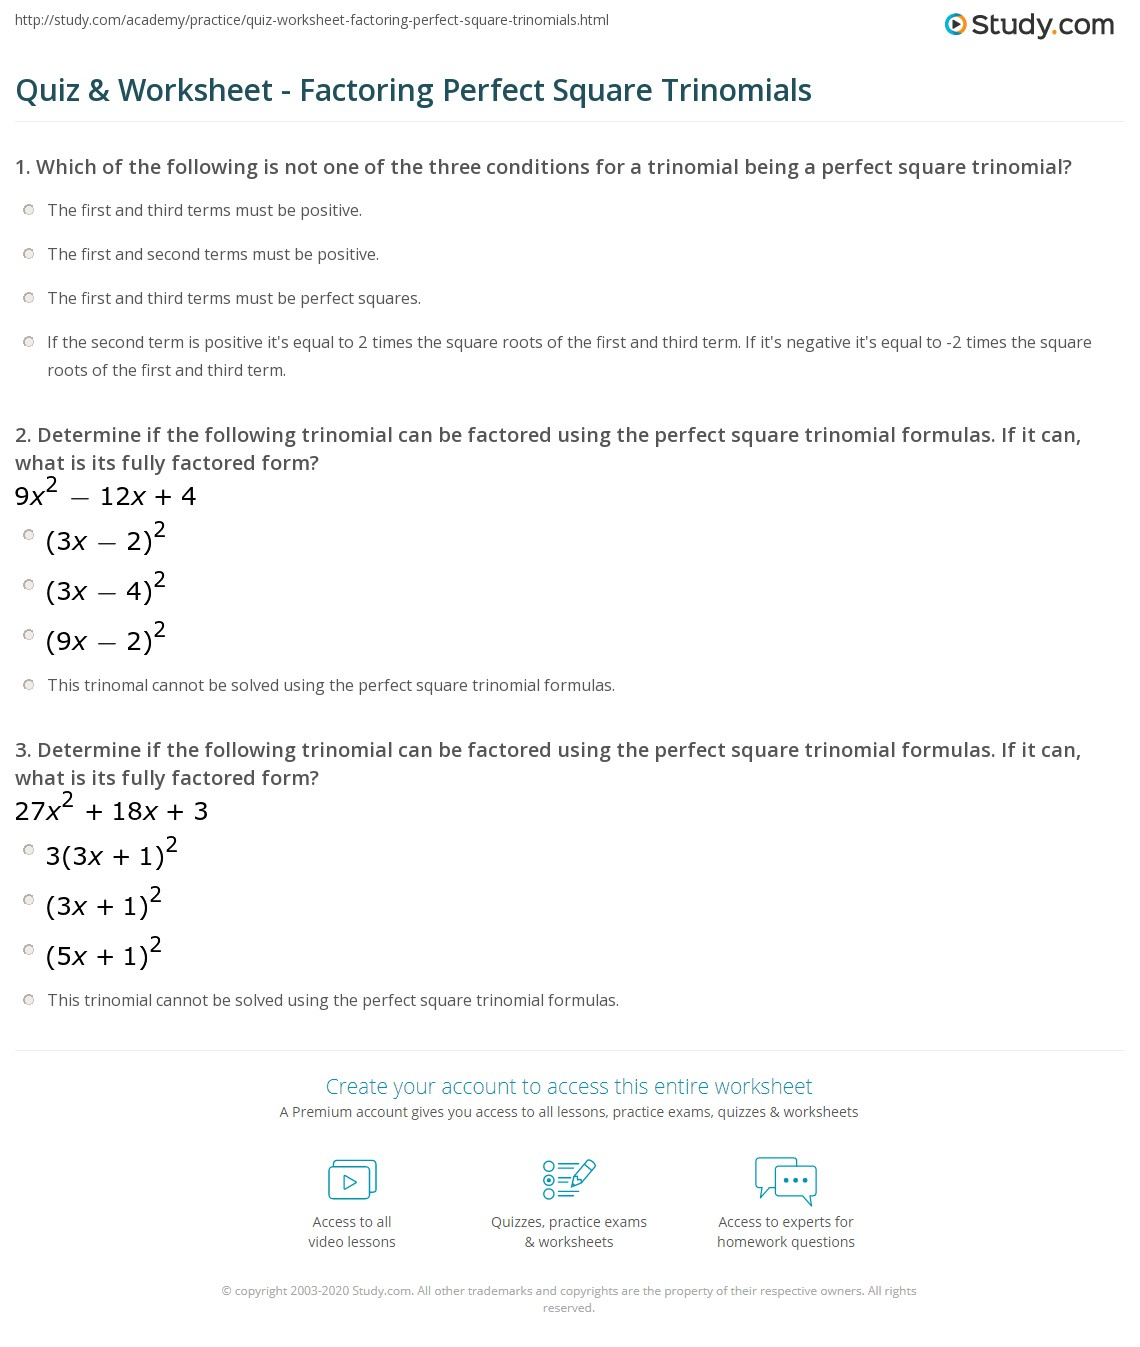 Printables Factoring Ax2 Bx C Worksheet Answers factoring ax2 bx c worksheet answers abitlikethis quiz amp perfect square trinomials study com